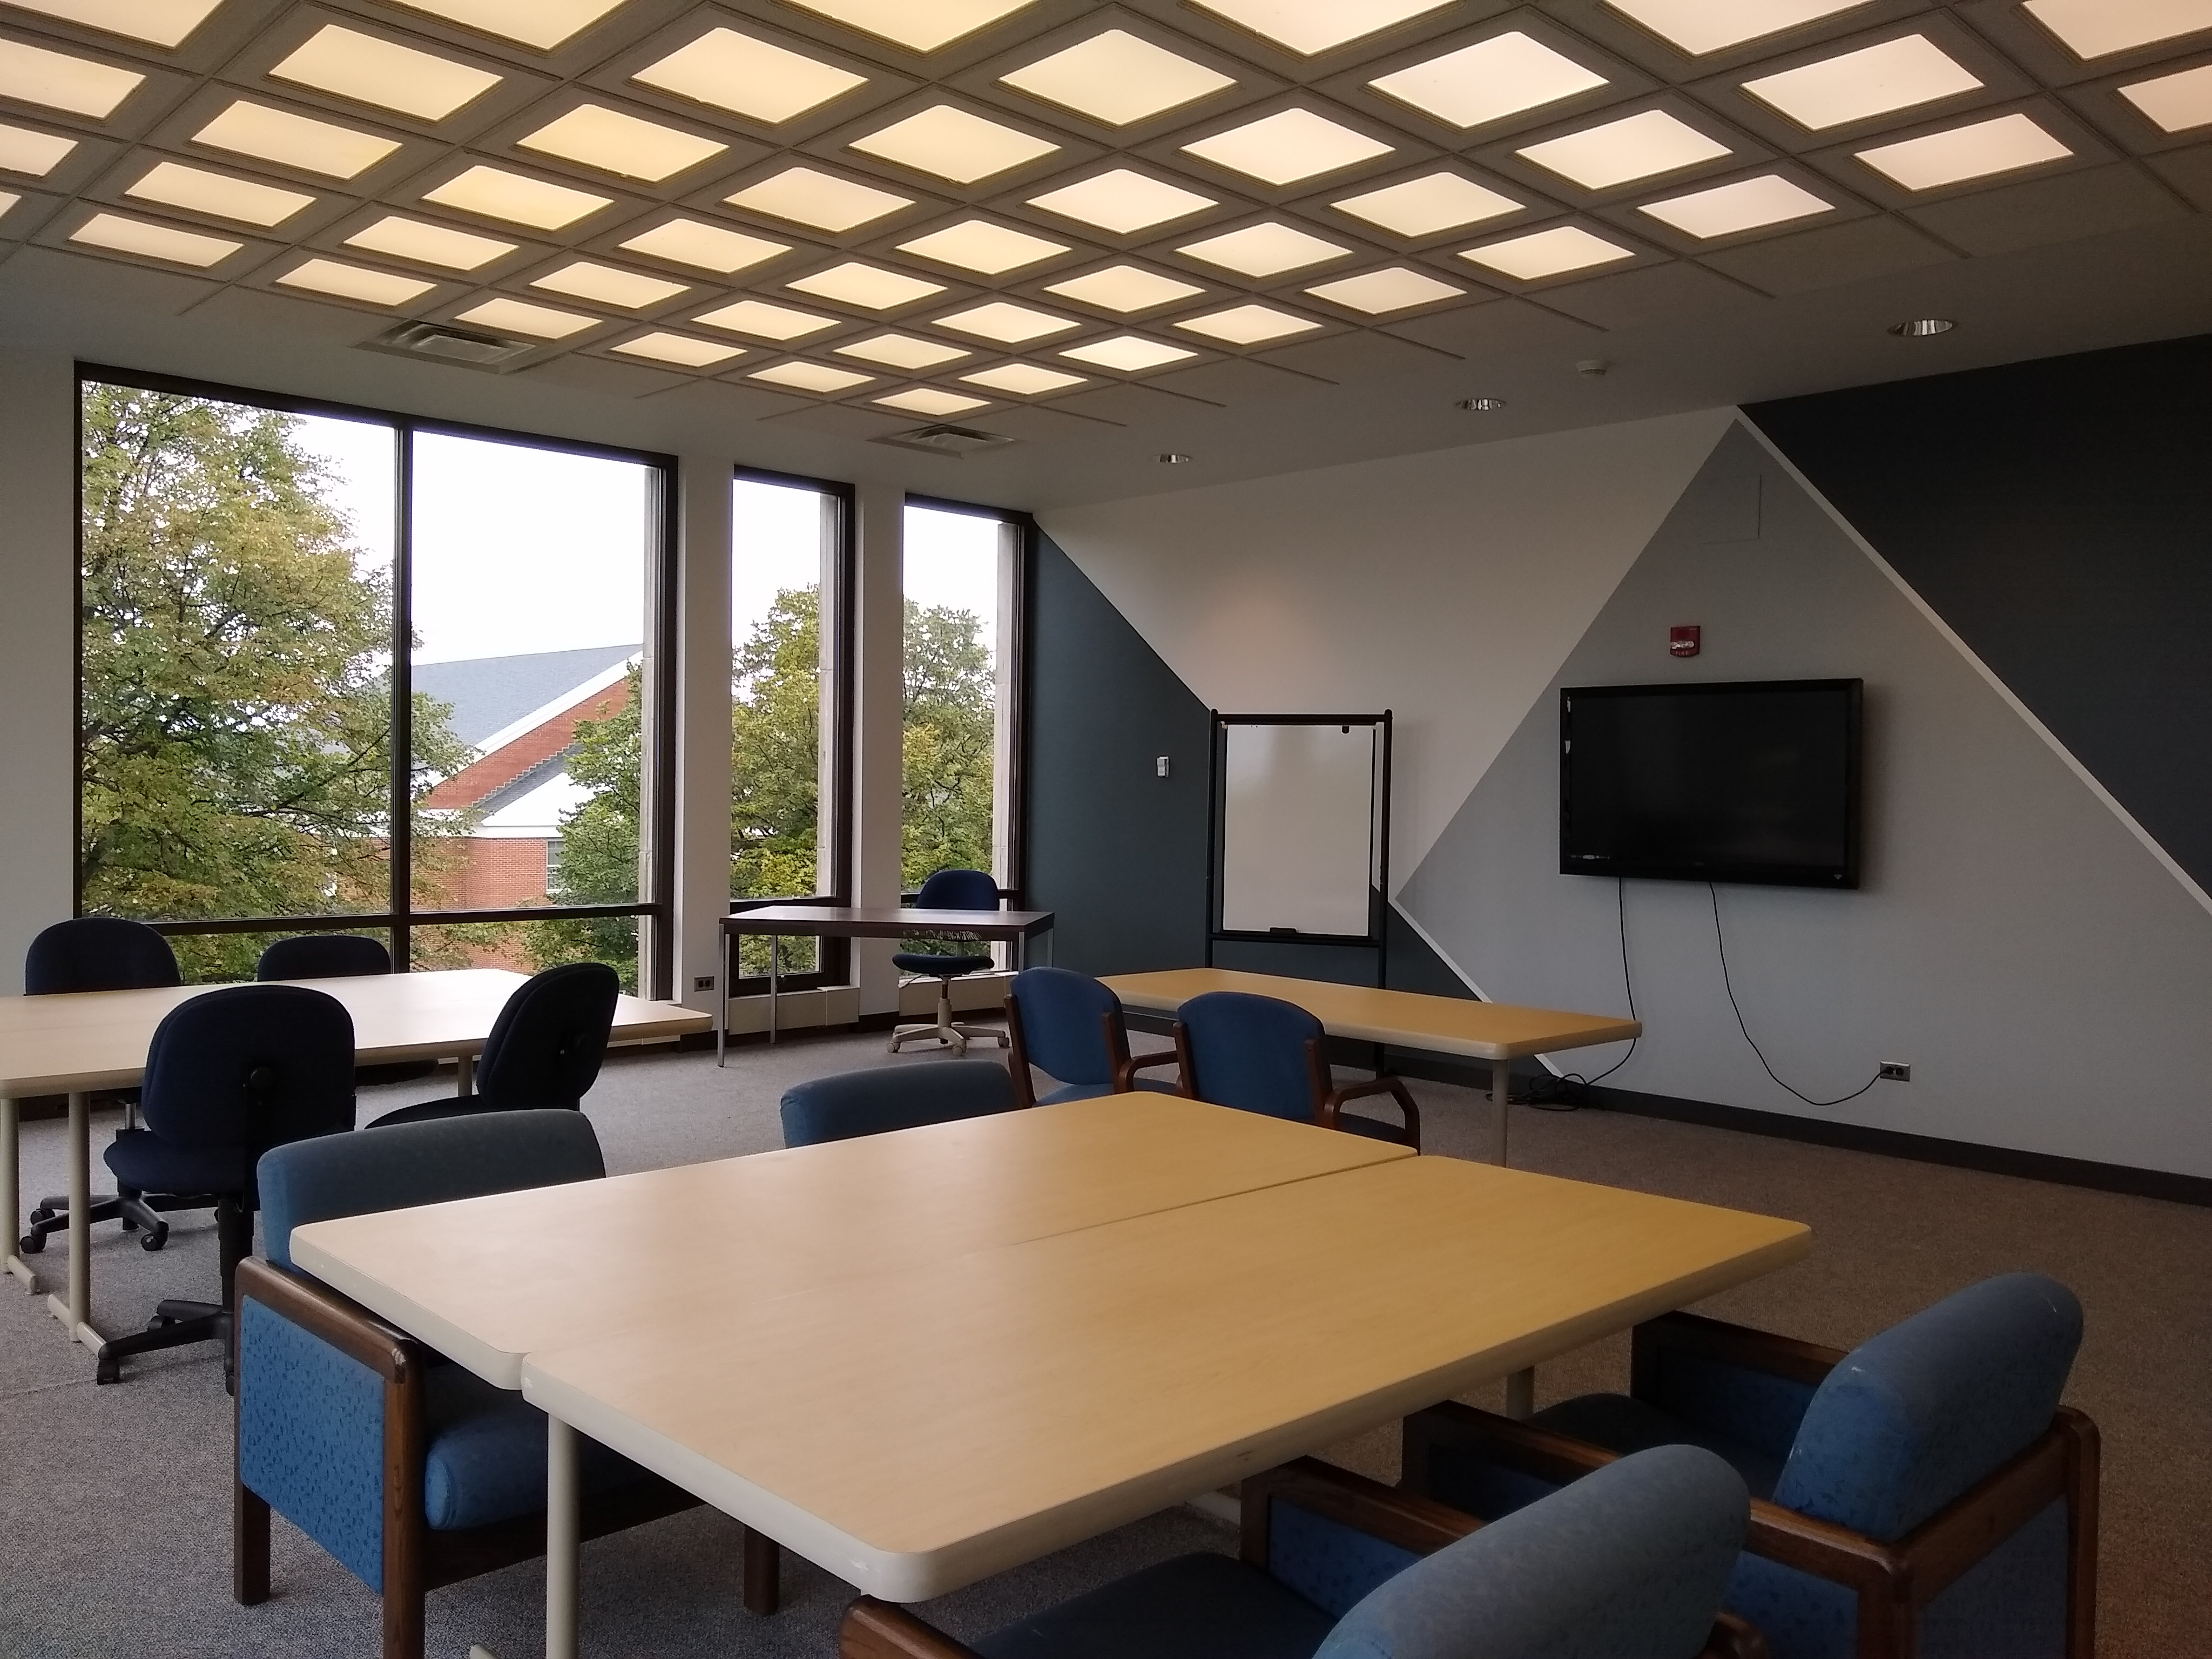 Room 301 features large tables and plenty of natural light.